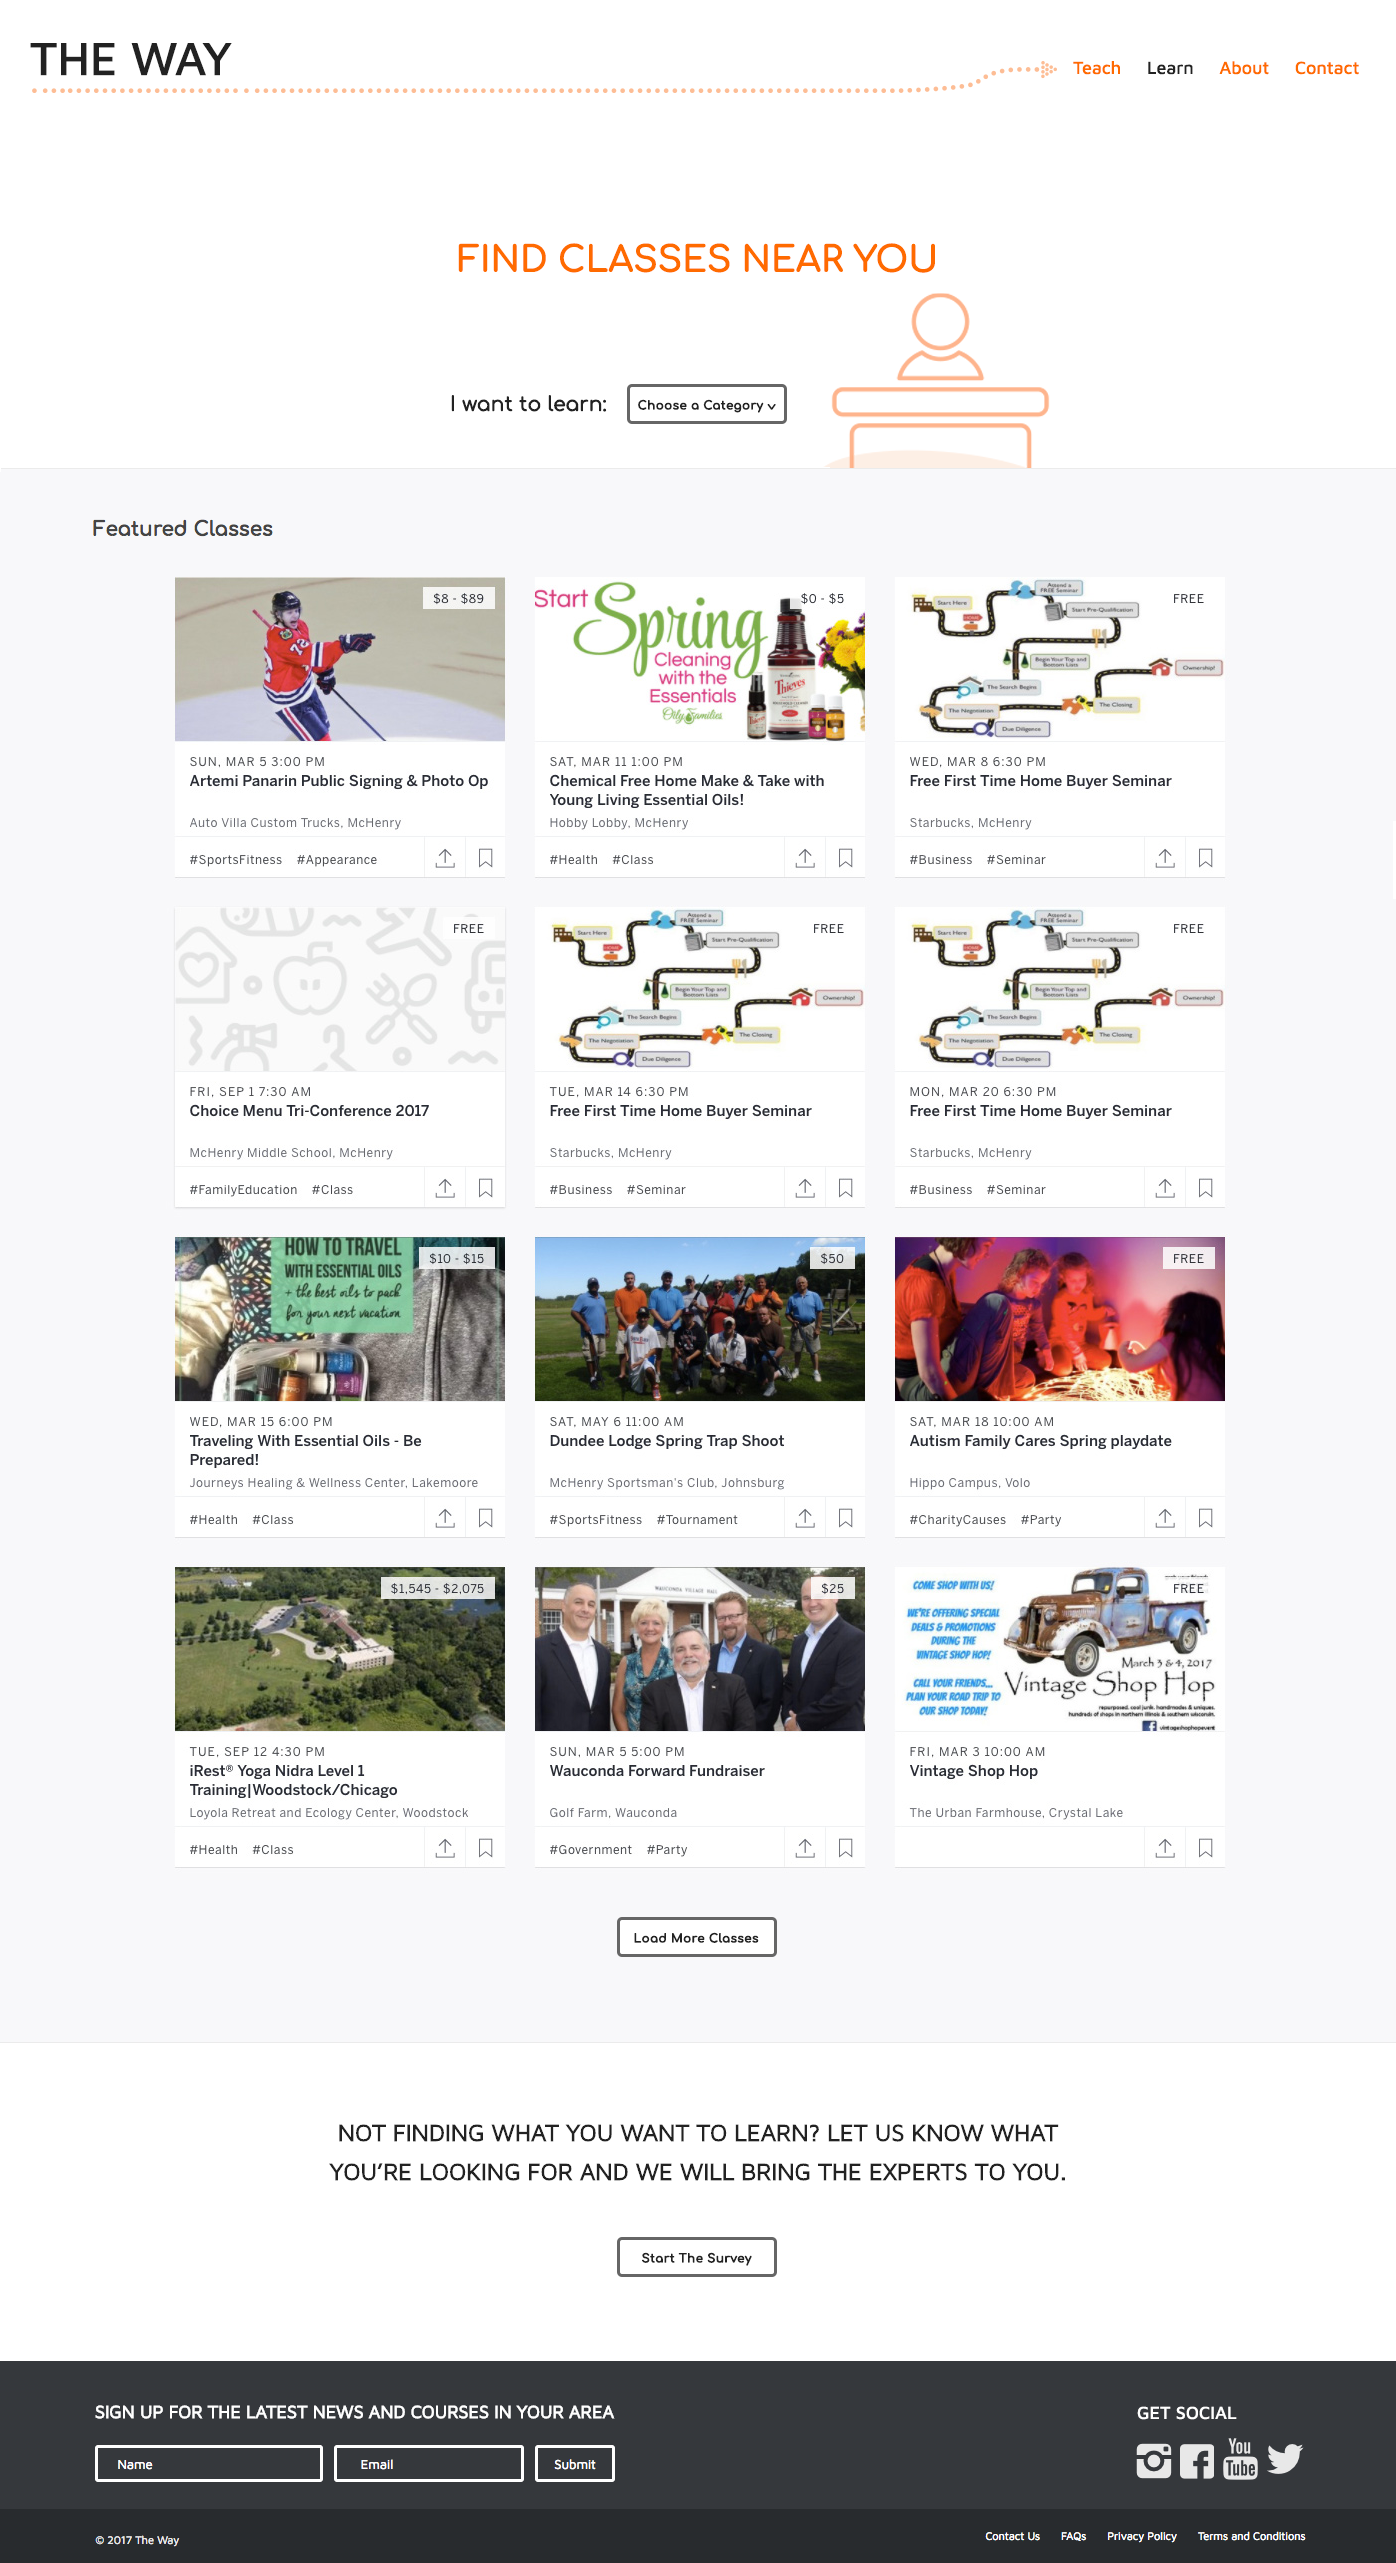 The Way Learn Page